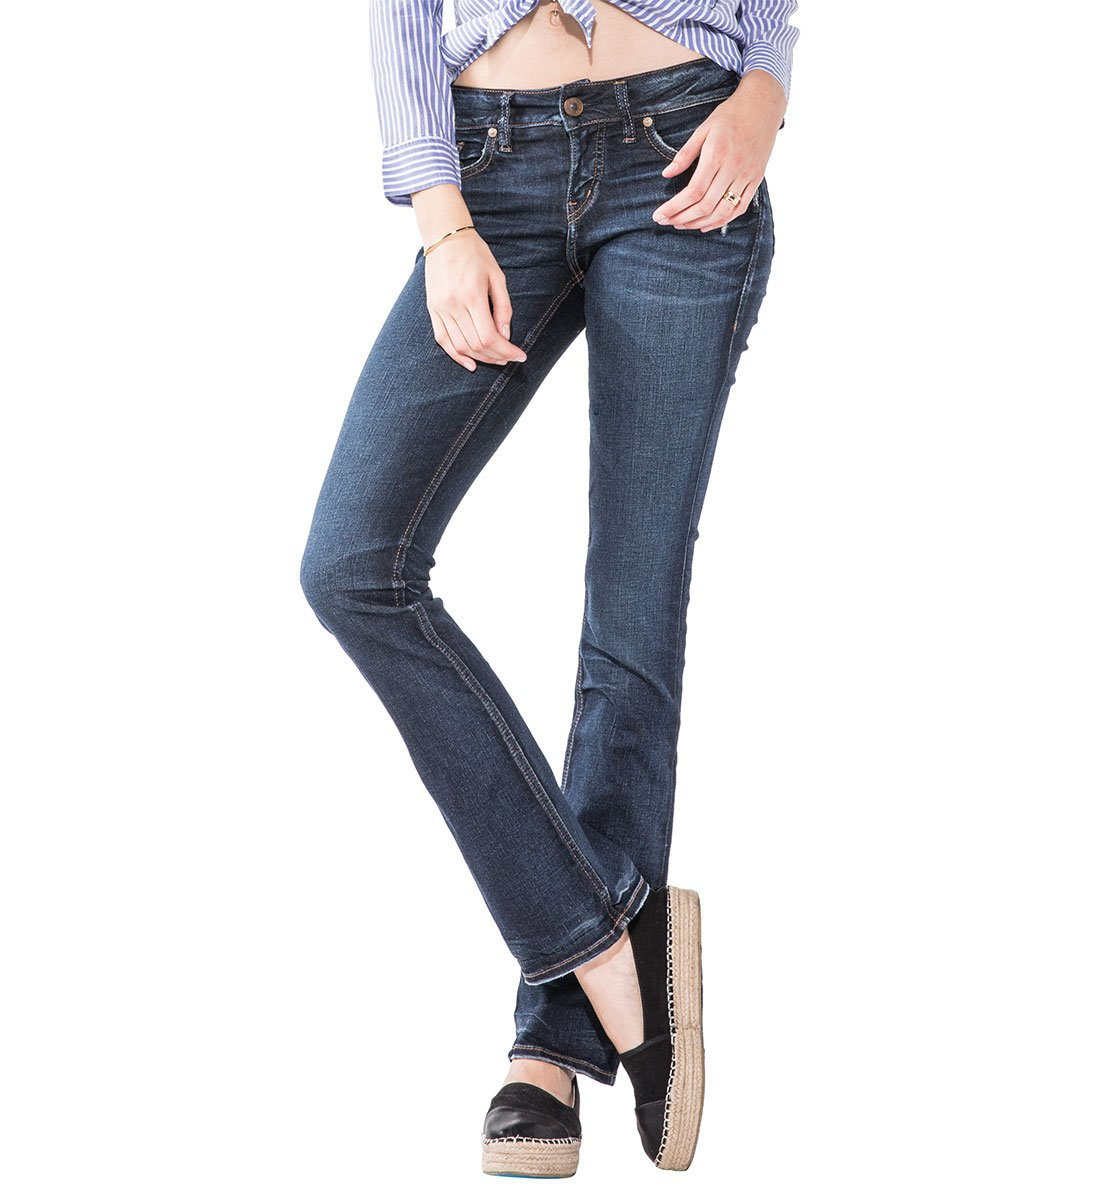 Silver Jeans Women's Co Elyse Relaxed Fit Mid Rise Slim Bootcut, Dark Hand Sand Wash, 31X31 by Silver Jeans Co.